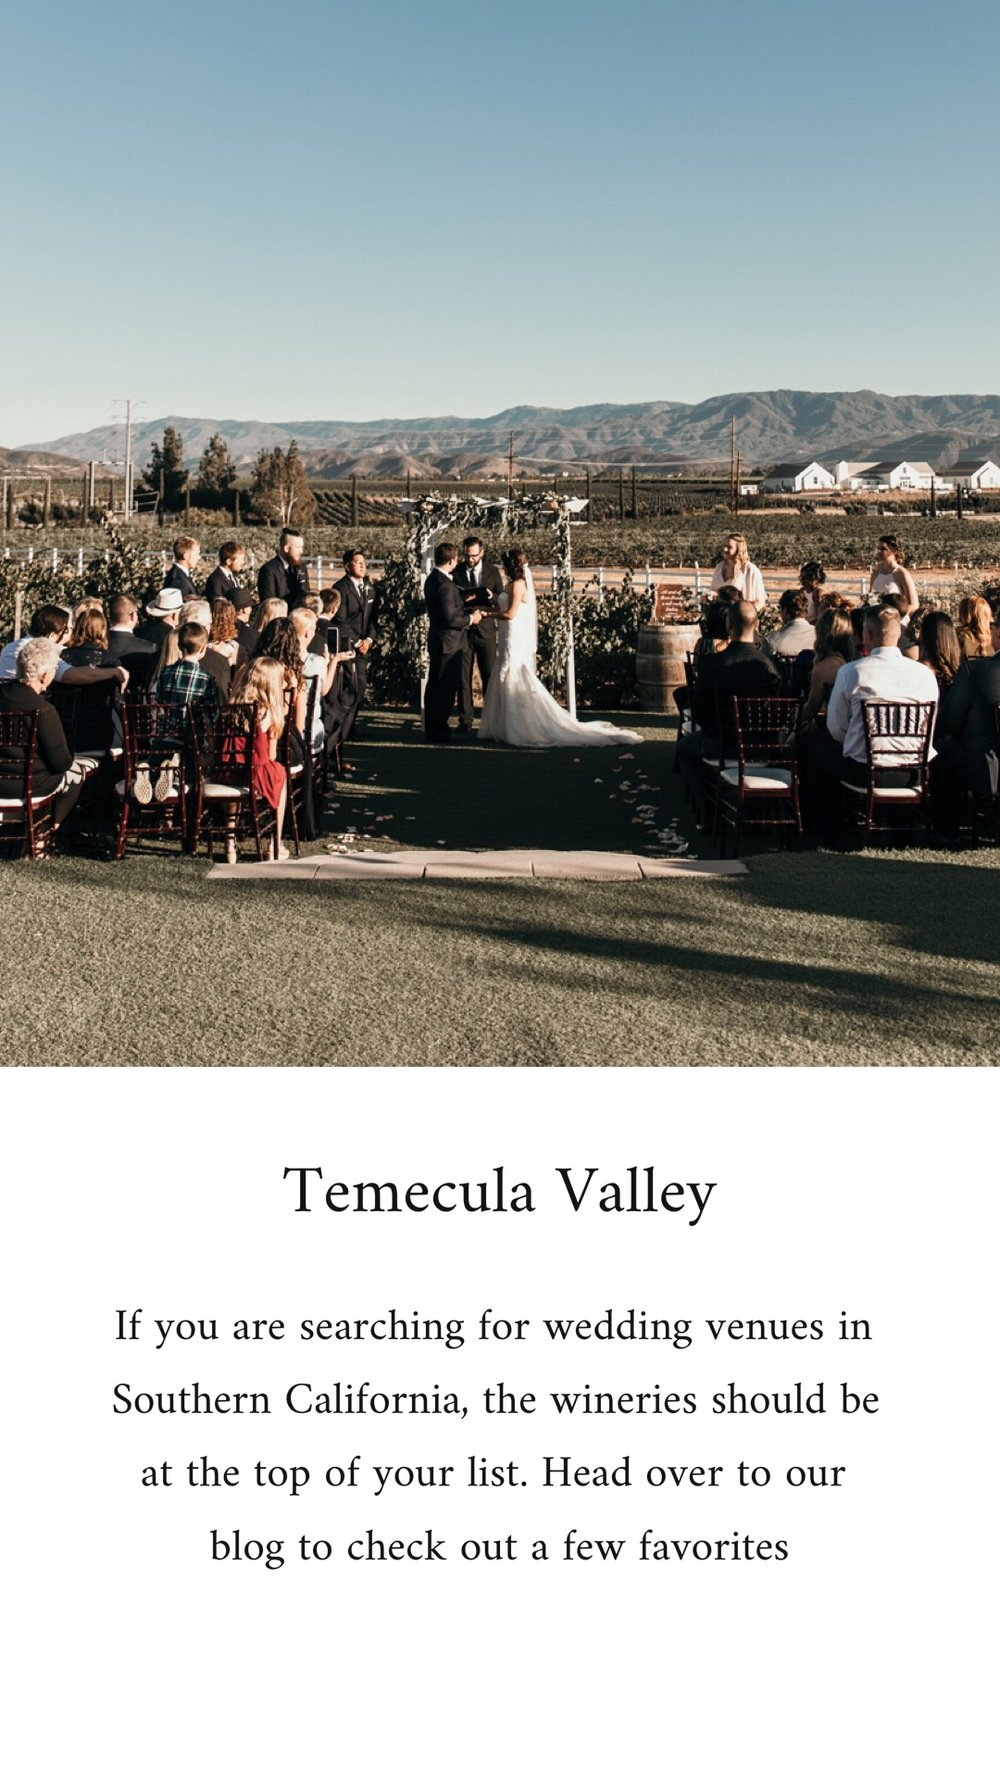 Temeculaweddingvenues.JPG